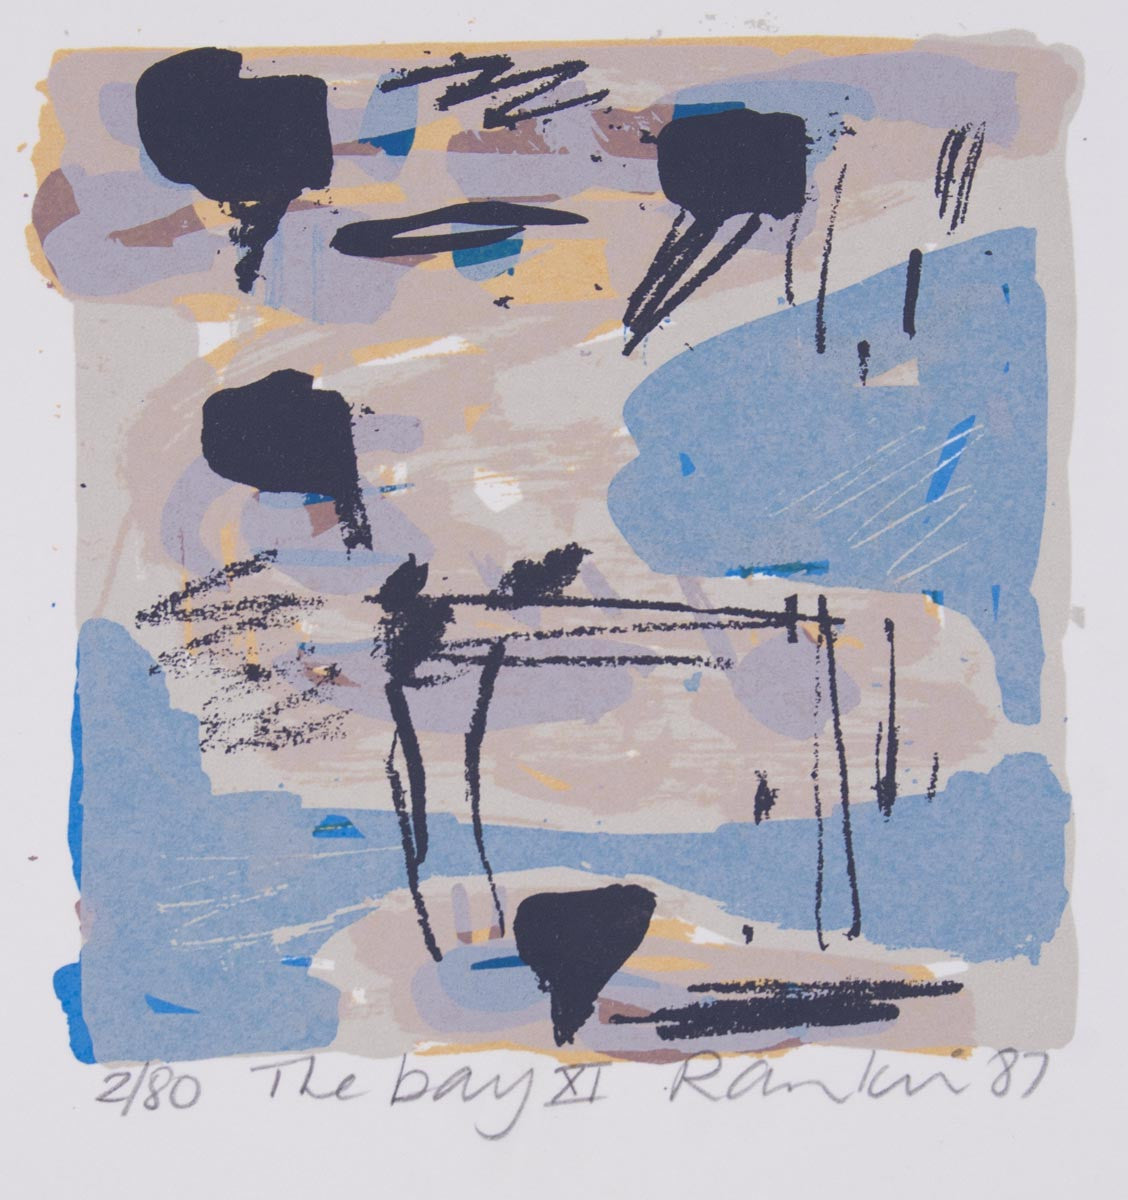 David Rankin 'The Bay XI' - screenprint on paper